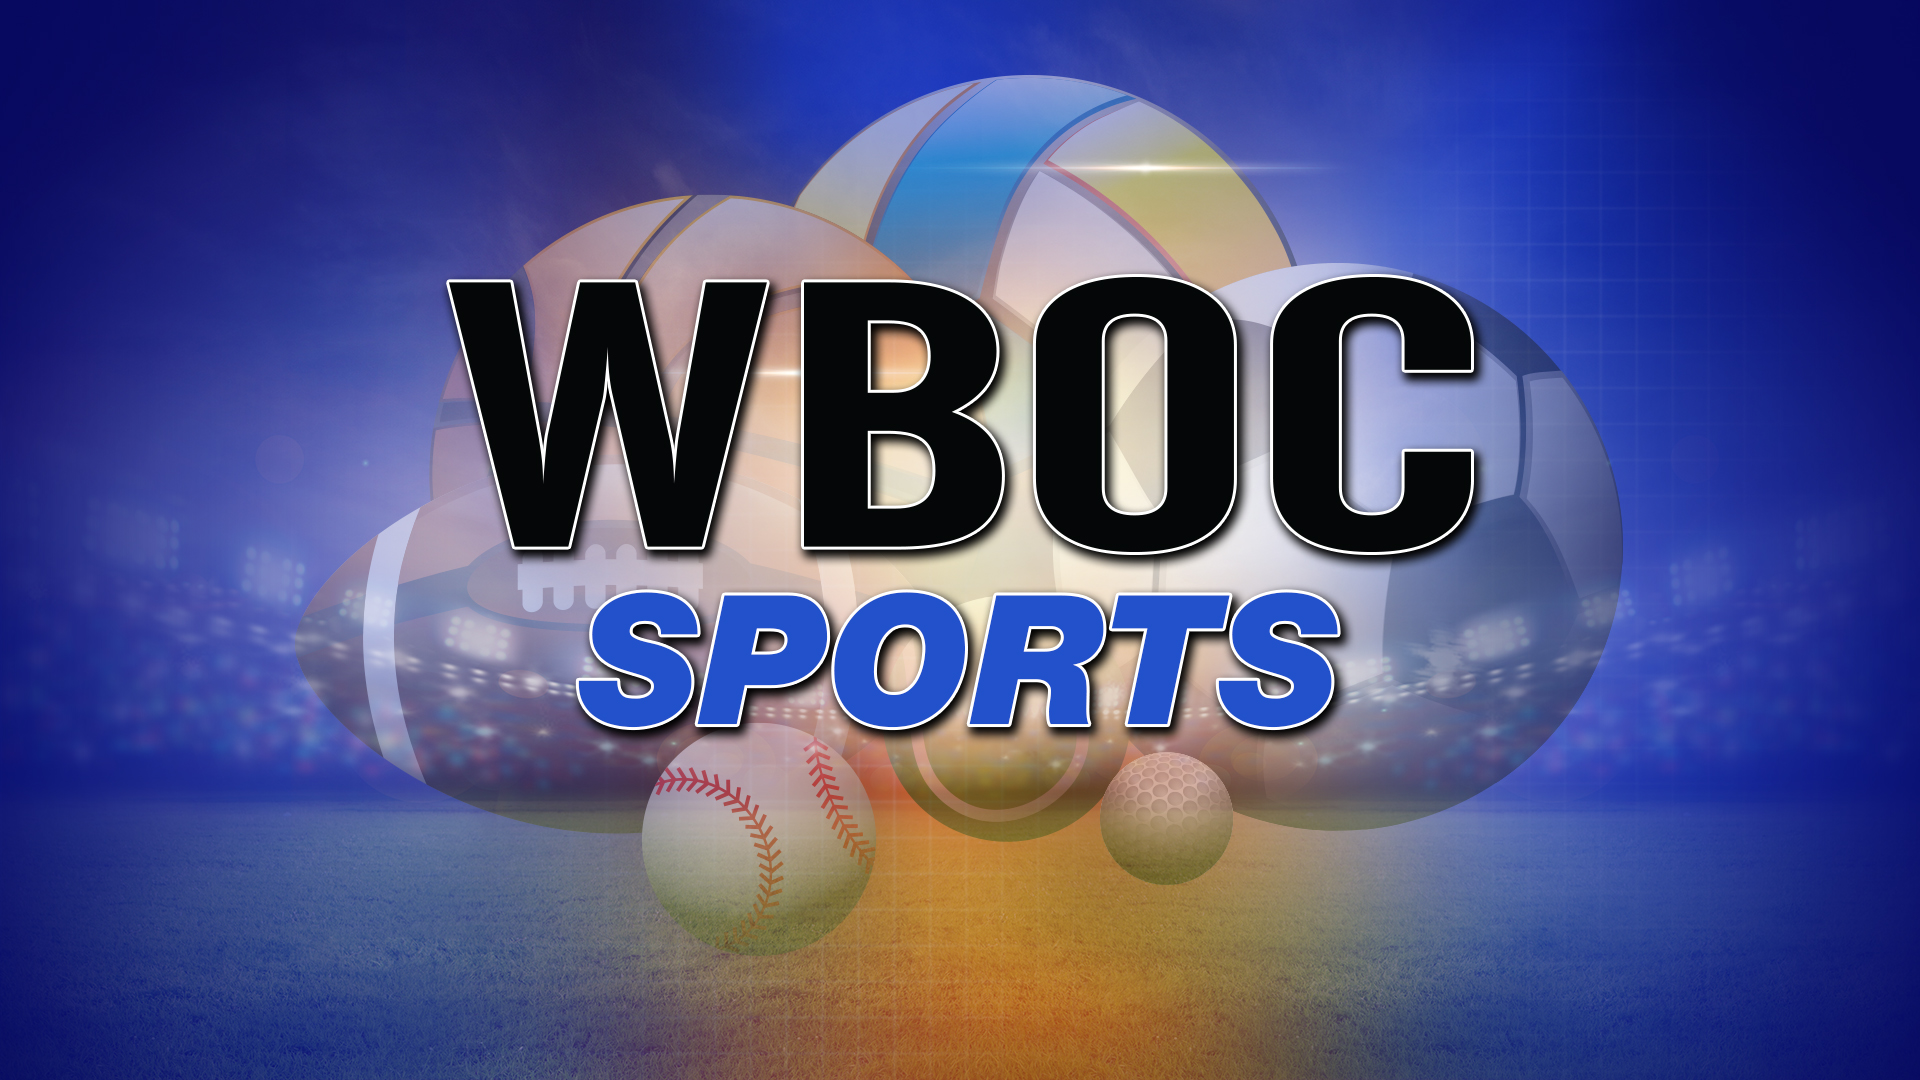 WBOC Sports Report: Thursday, November 12, 2015